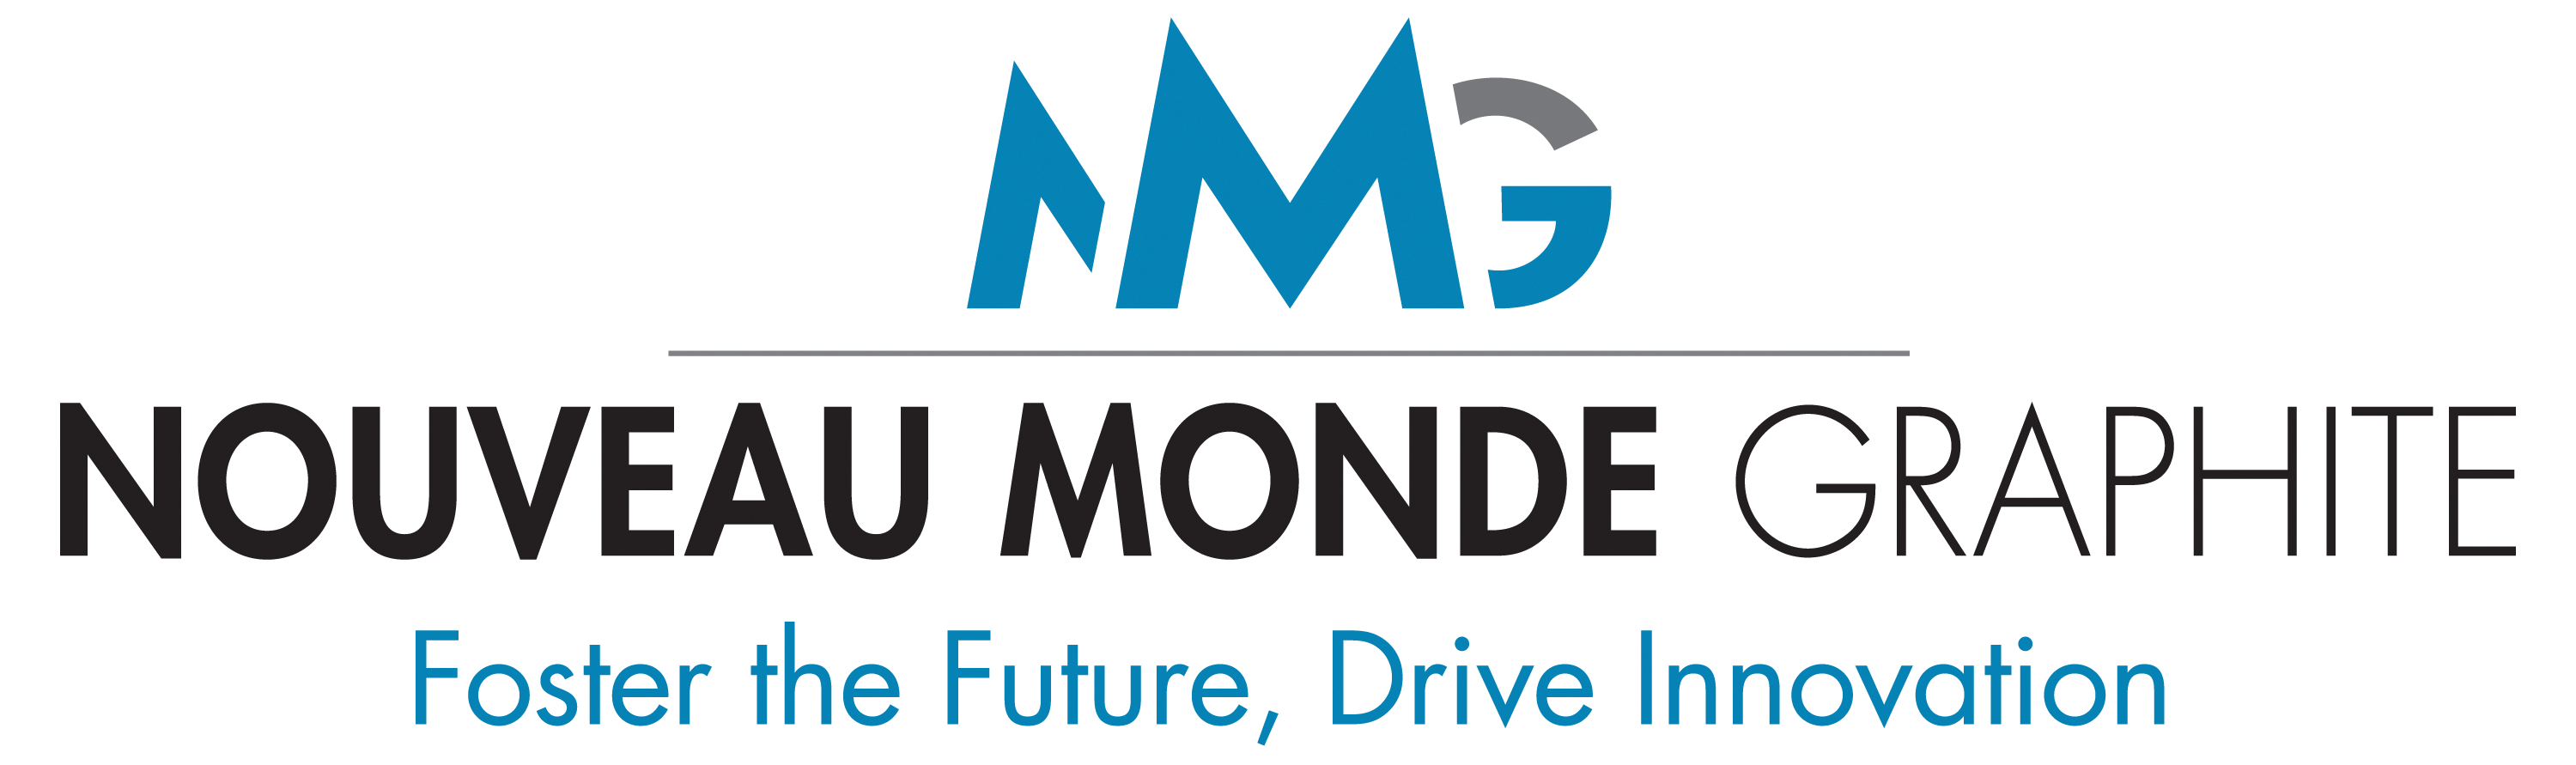 Nouveau Monde Announces Updated Resource Estimate and Increases Combined Measured & Indicated Resources by 25 % to 120.3 Mt @ 4